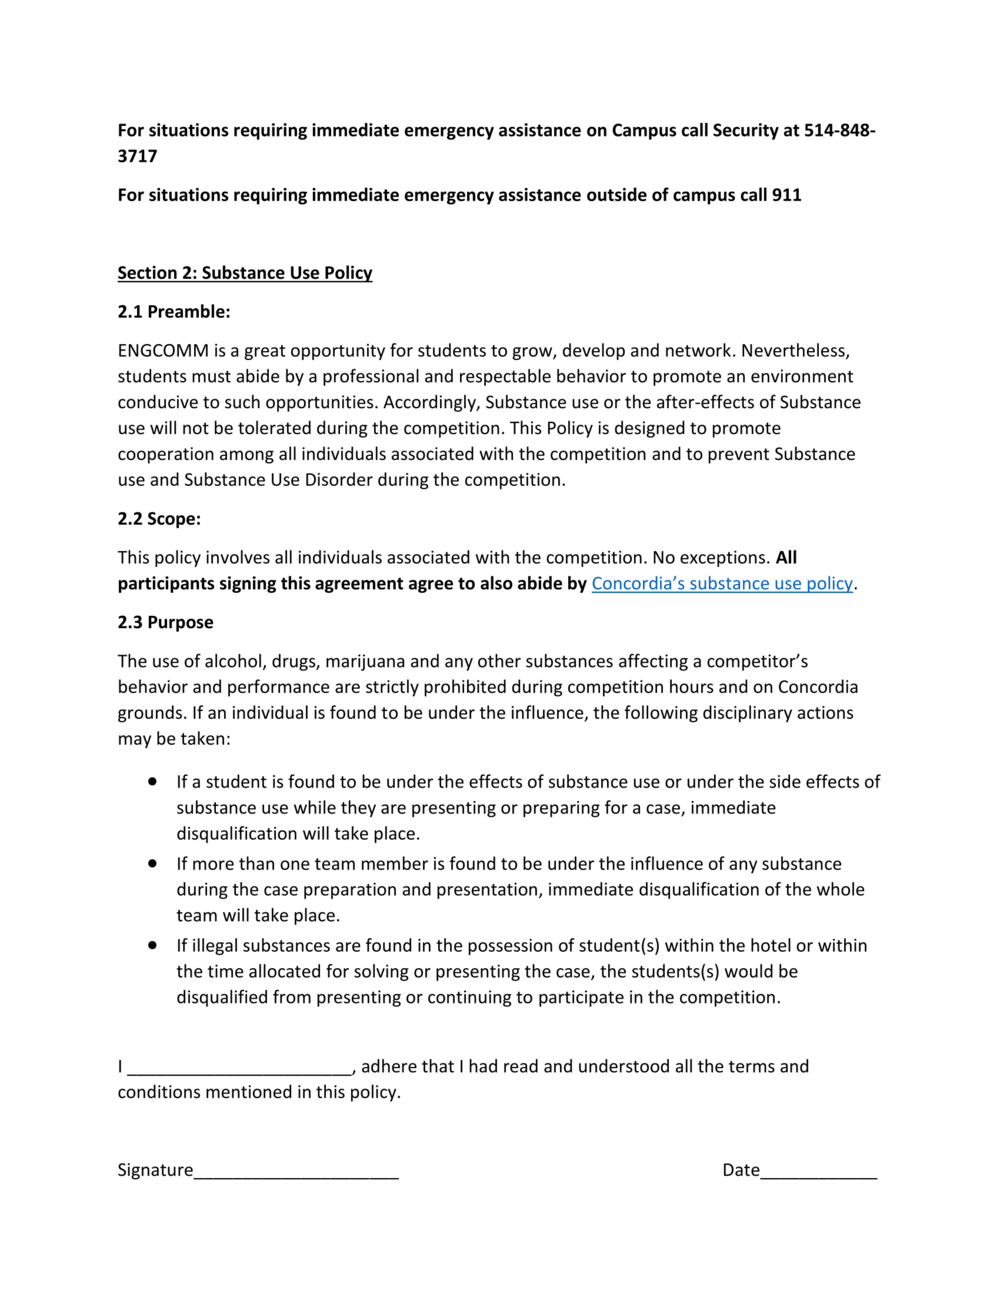 ENGCOMM Sexual Harassment and Substance Use Policy-2.png